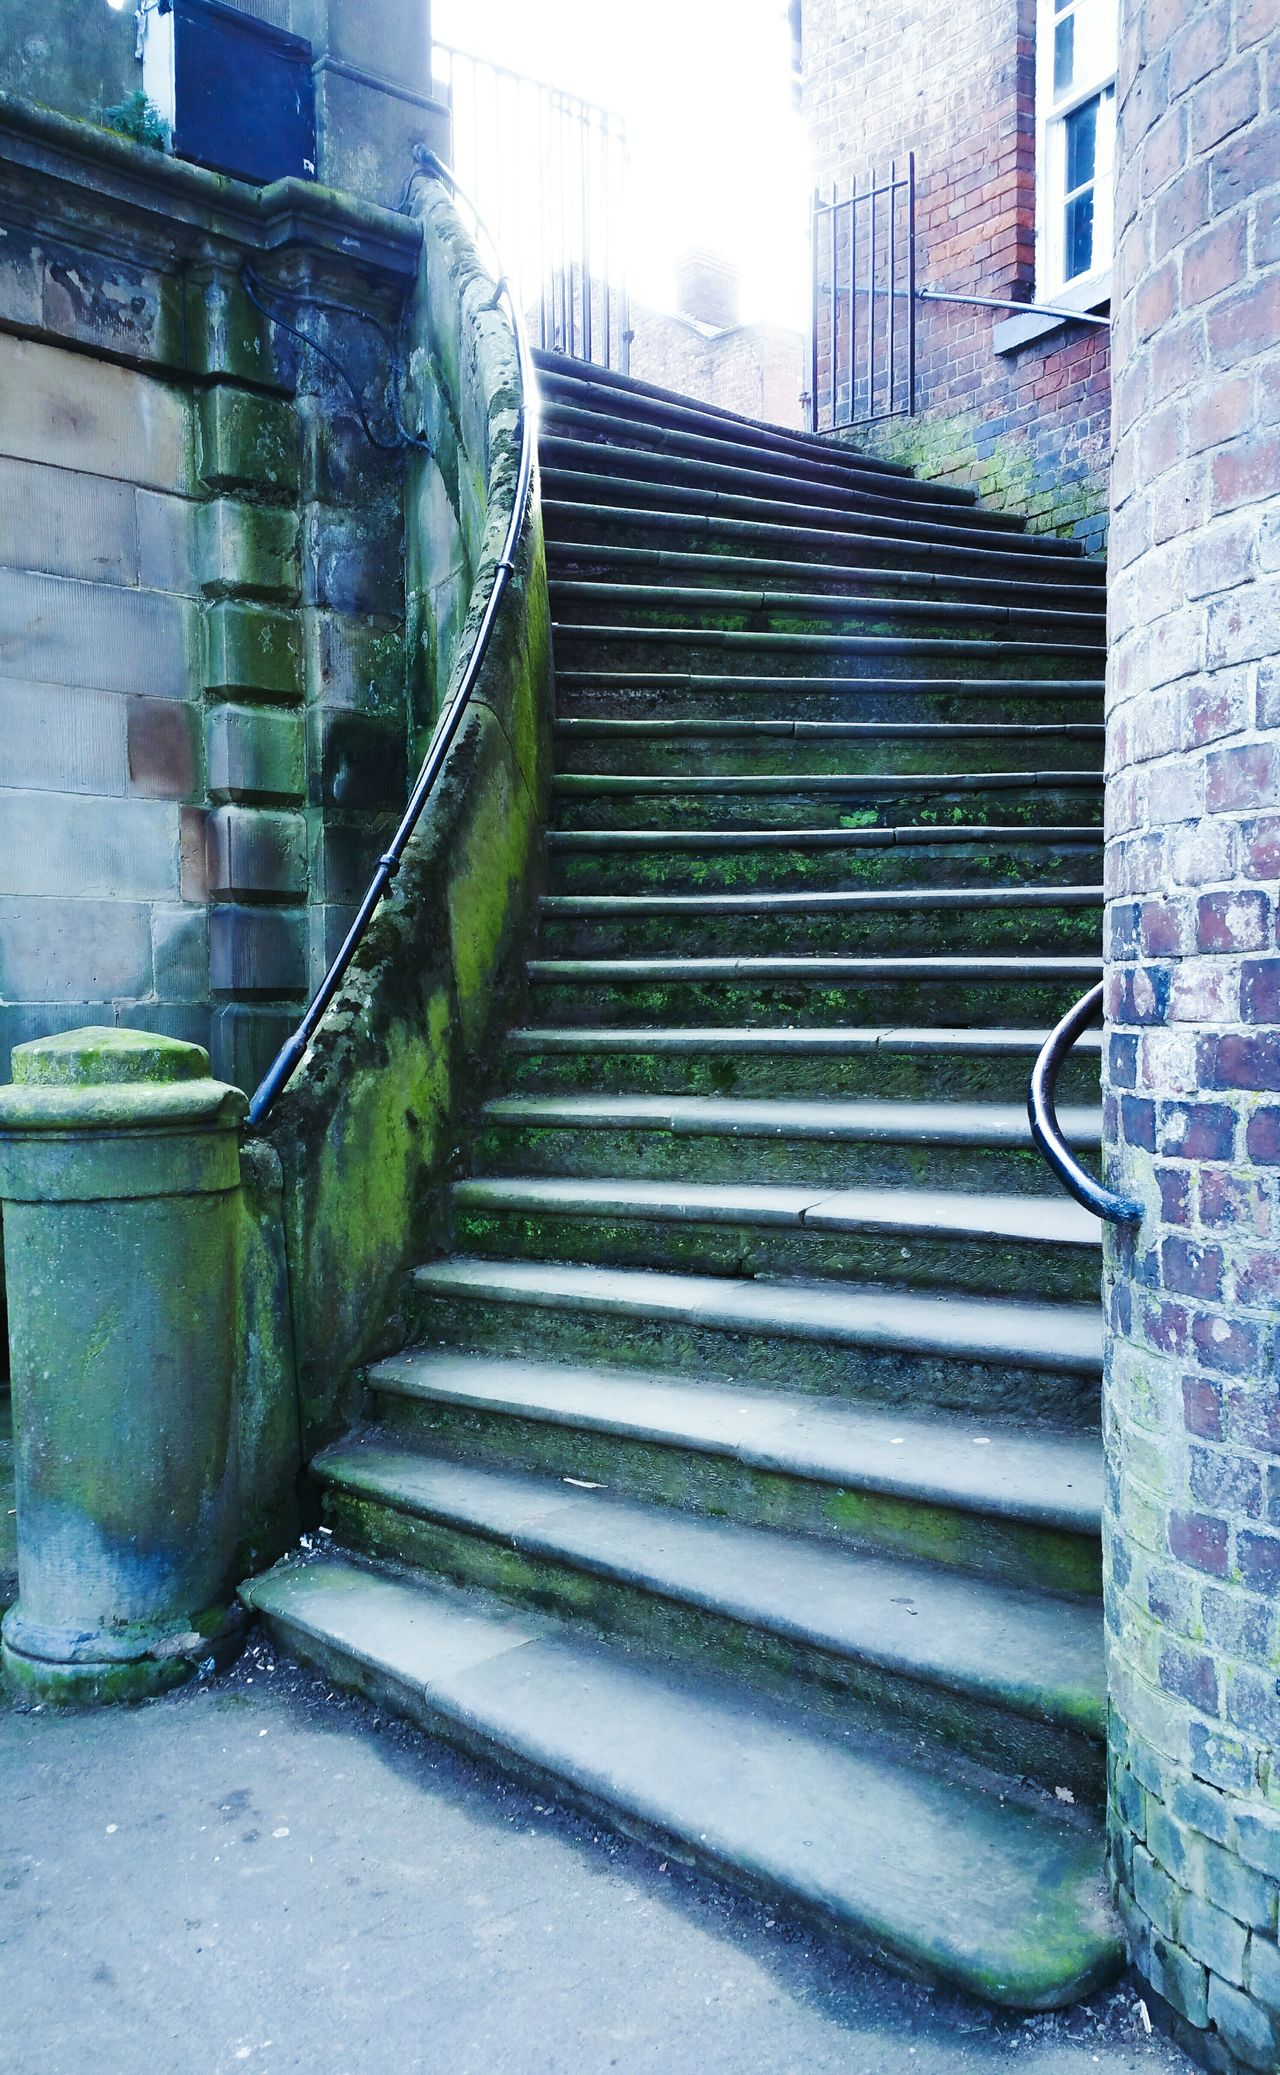 A Moss-covered Stairway Built Structure Architecture Building Exterior The City Light Outdoors Steps No People The Way Forward City Day Shrewsbury Bridge Stone Moss Wet Humid Humid Climate Britain Old